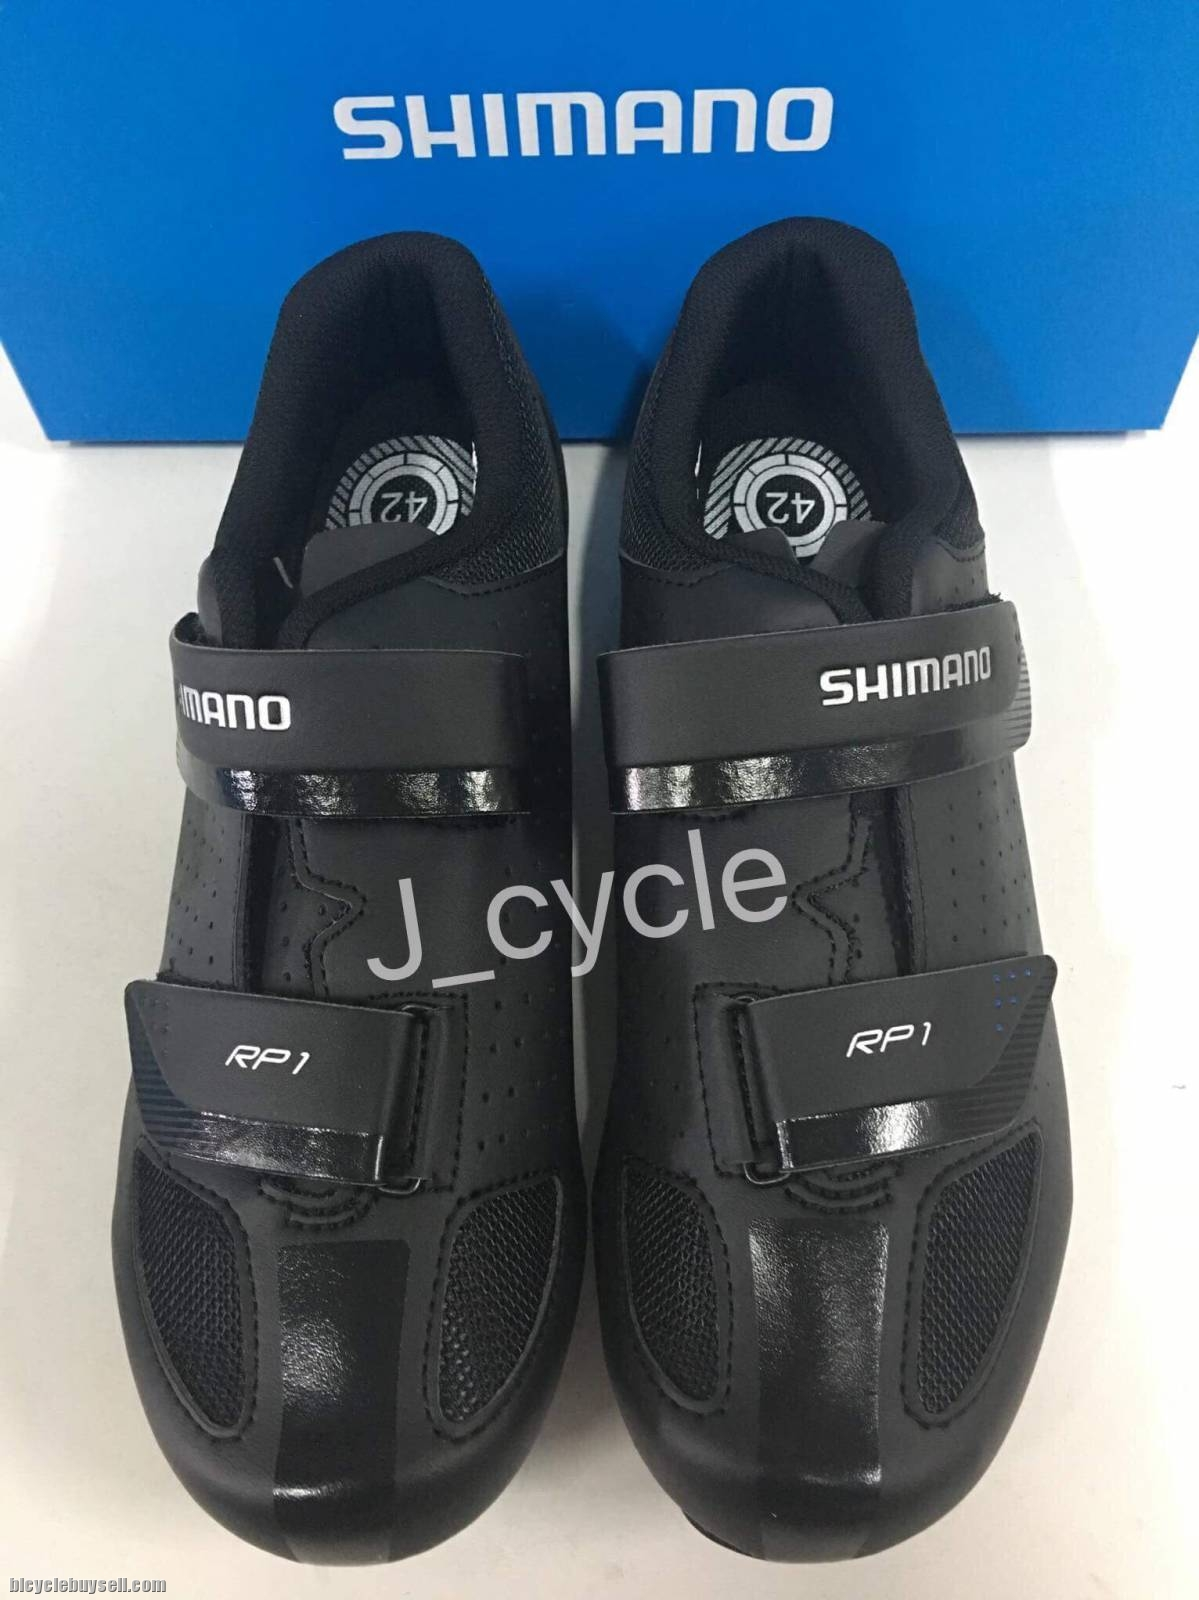 0d7bf8af9f6 SHIMANO RP1 Cycling Shoes (ROAD) - free pos